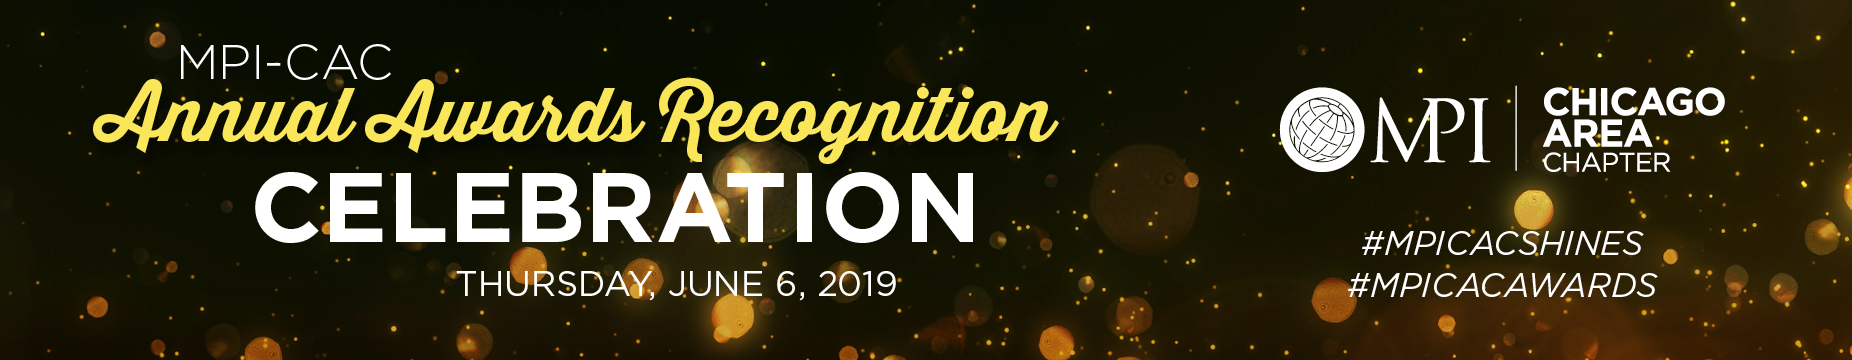 MPI-CAC 2019 Annual Awards Recognition Celebration